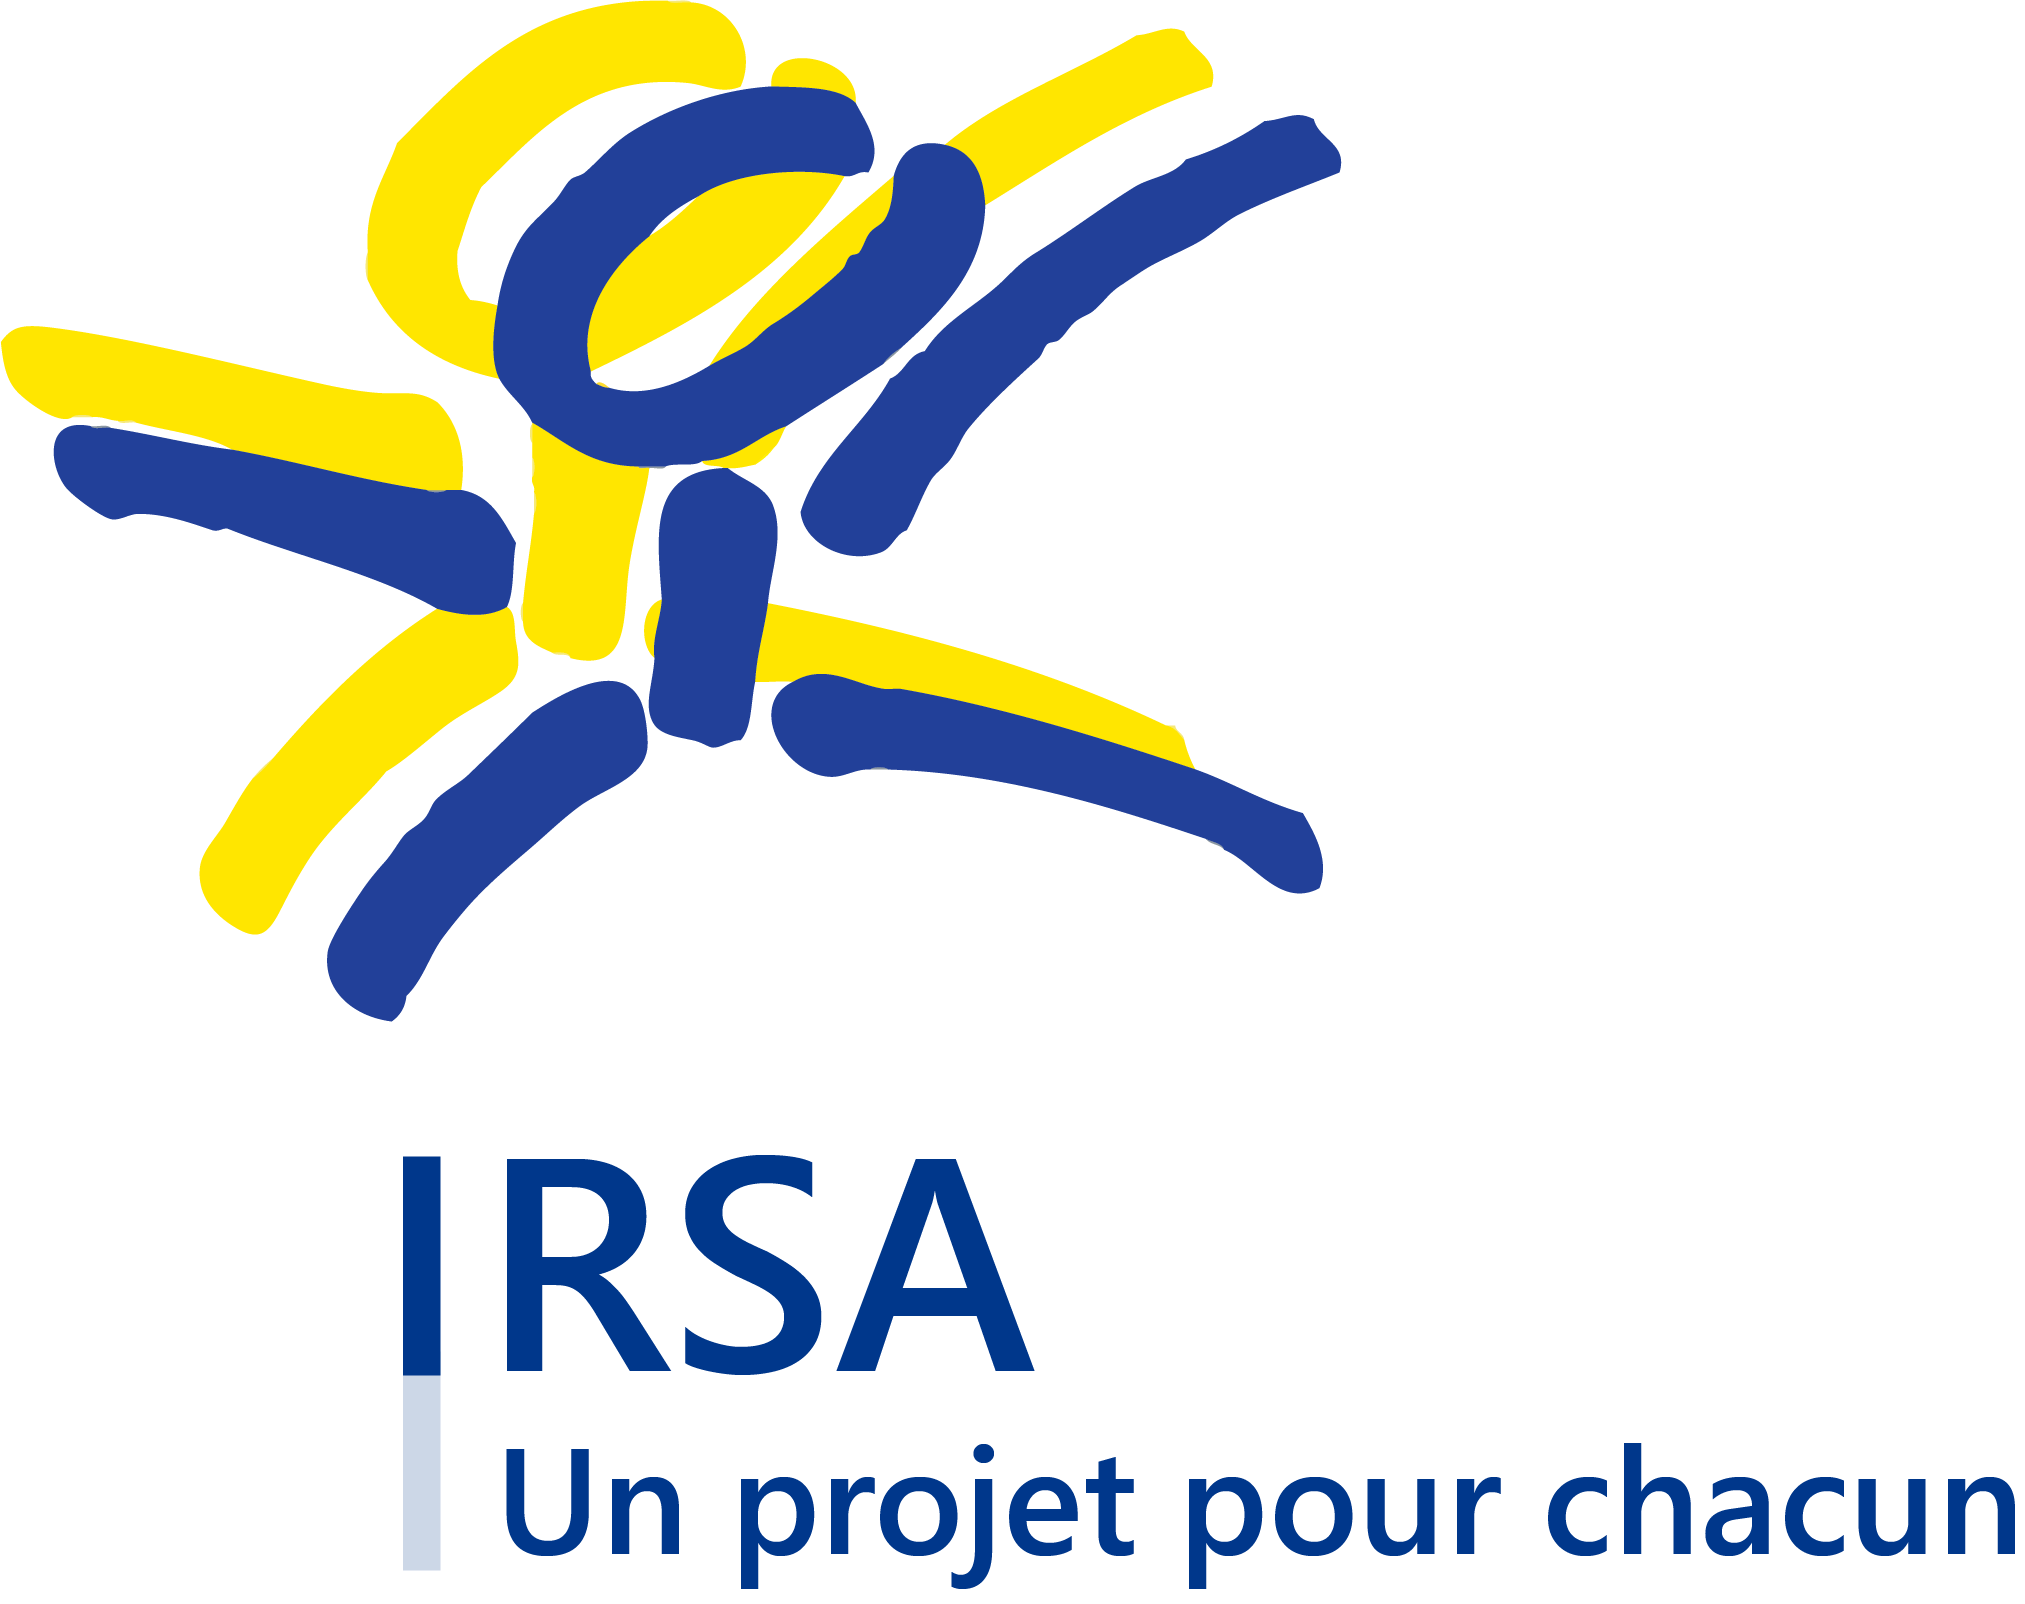 Logo-IRSA-Complet